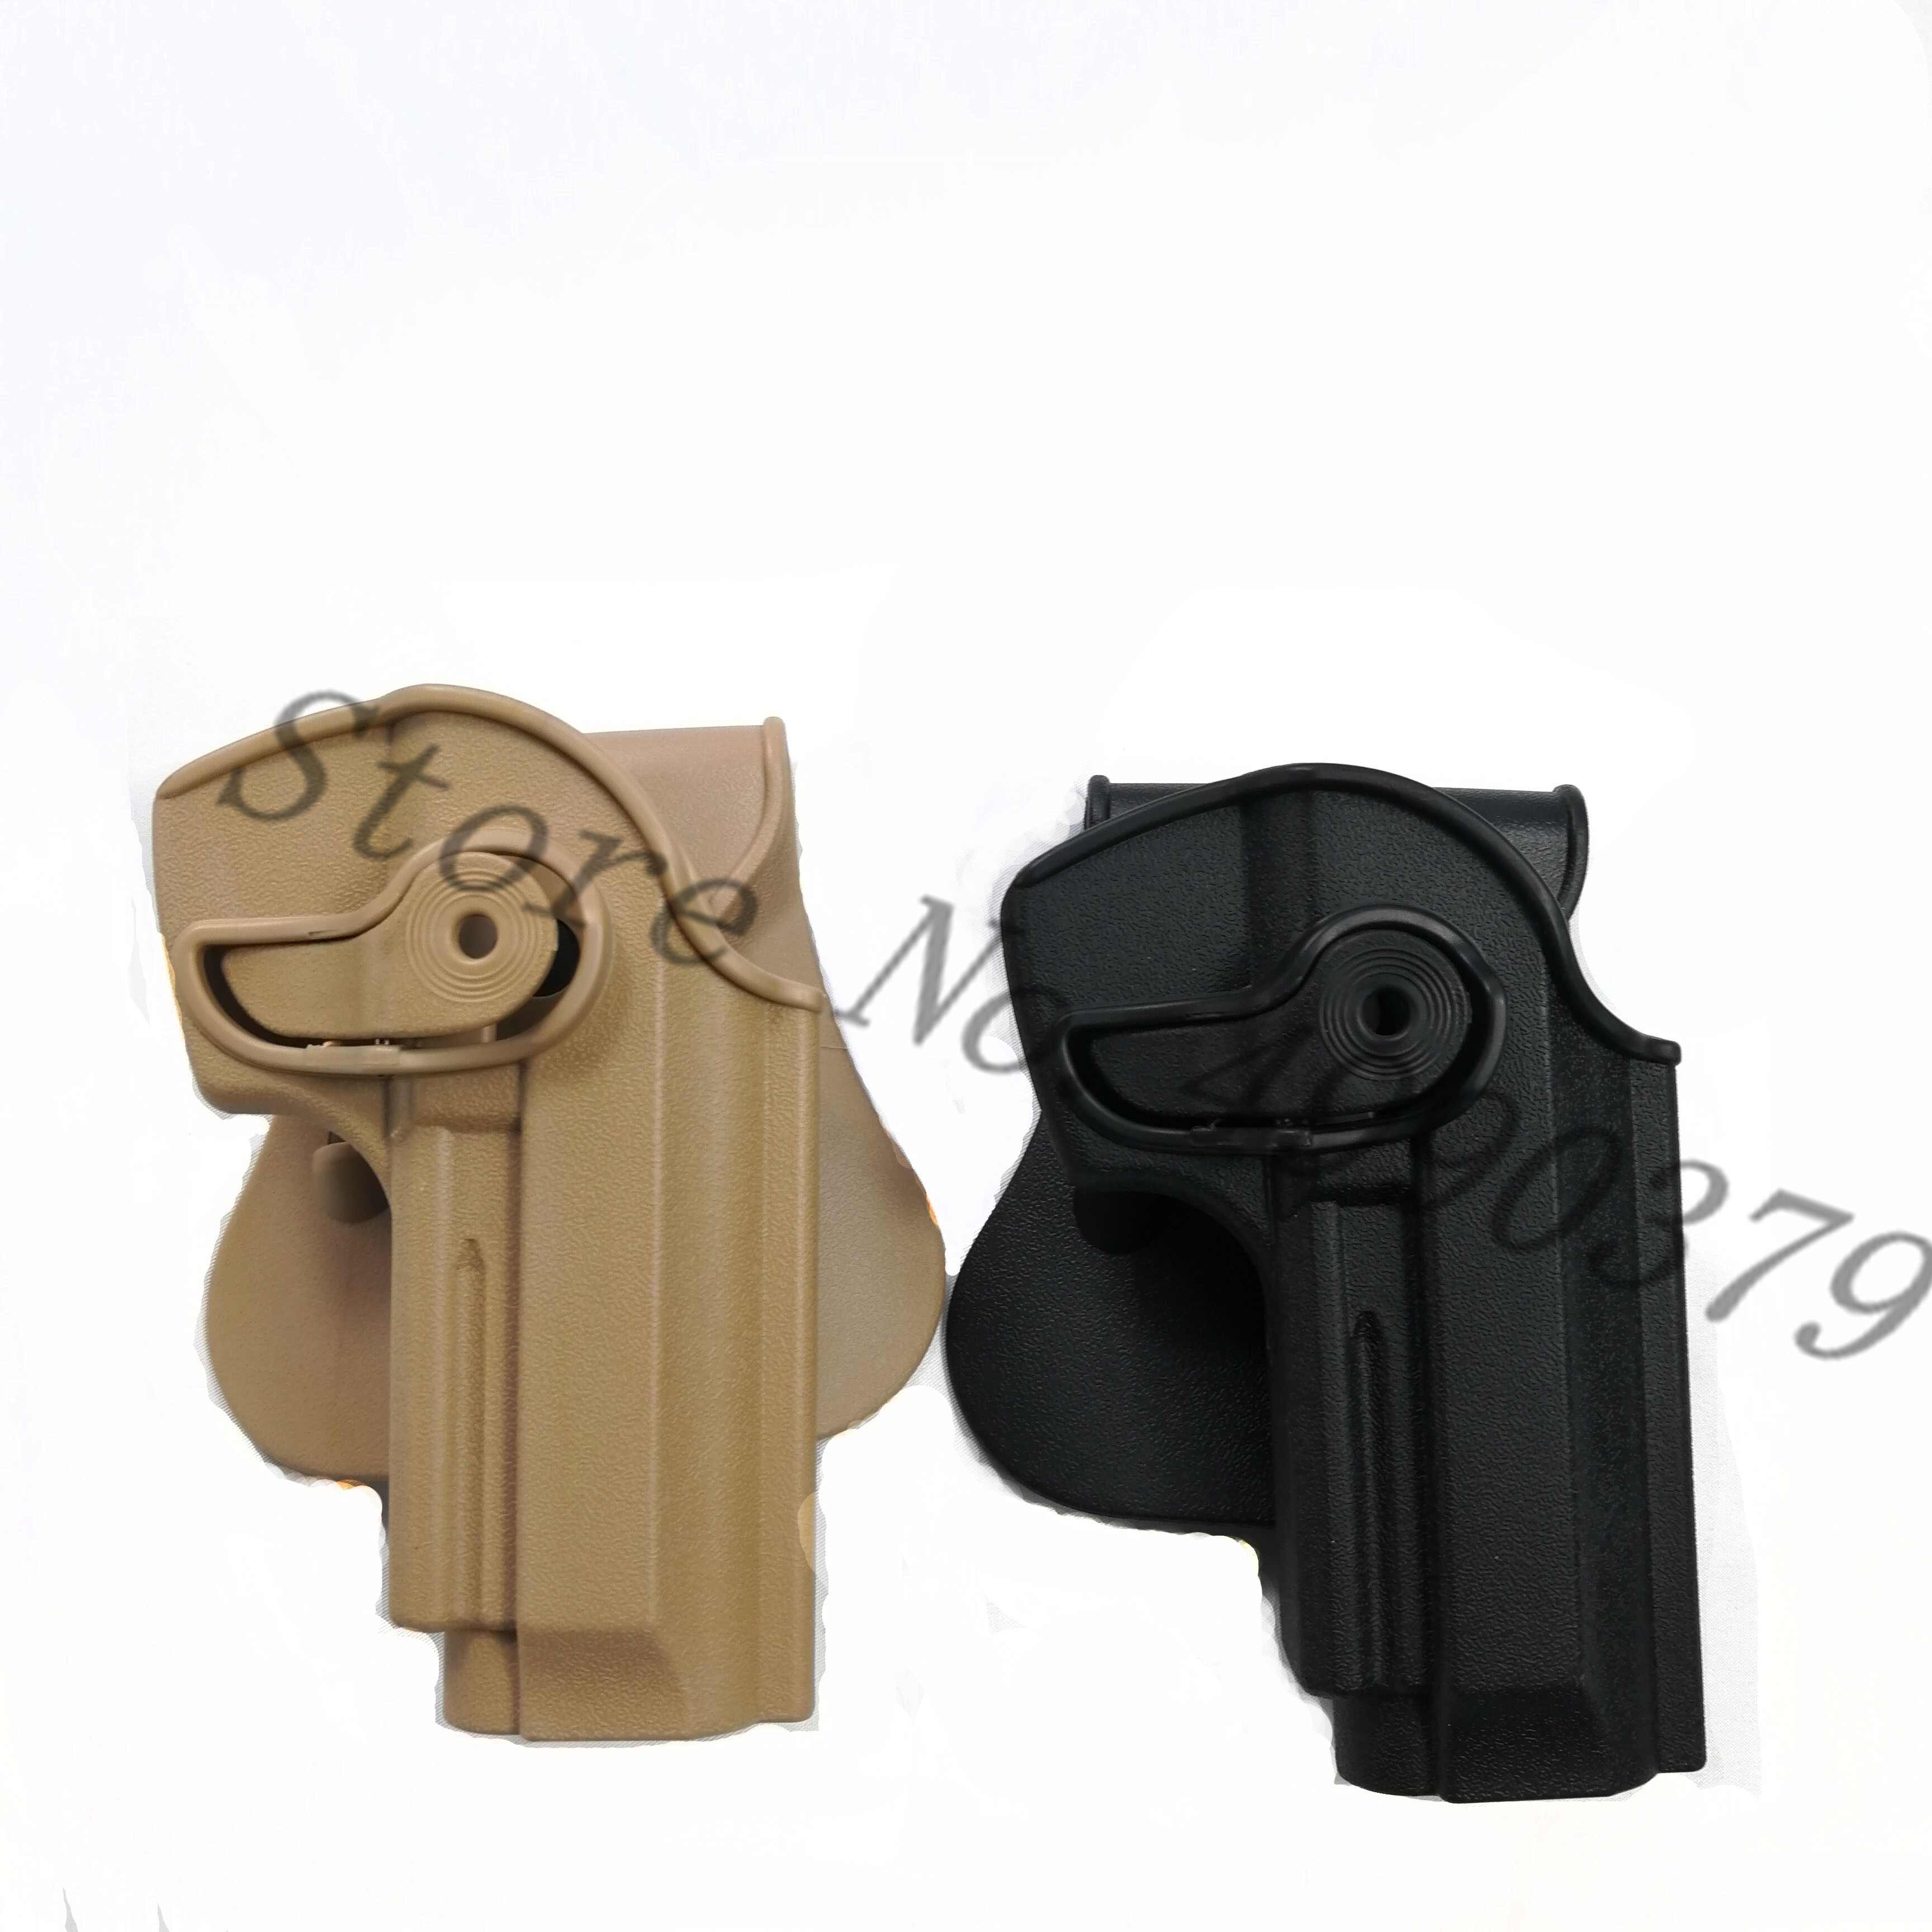 Image 3 - M9 Holster Tactical IMI Right Hand BERETTA M92 Holster Paddle Pistol Gun Holster Gun Airsoft Case Hunting Accessories-in Holsters from Sports & Entertainment